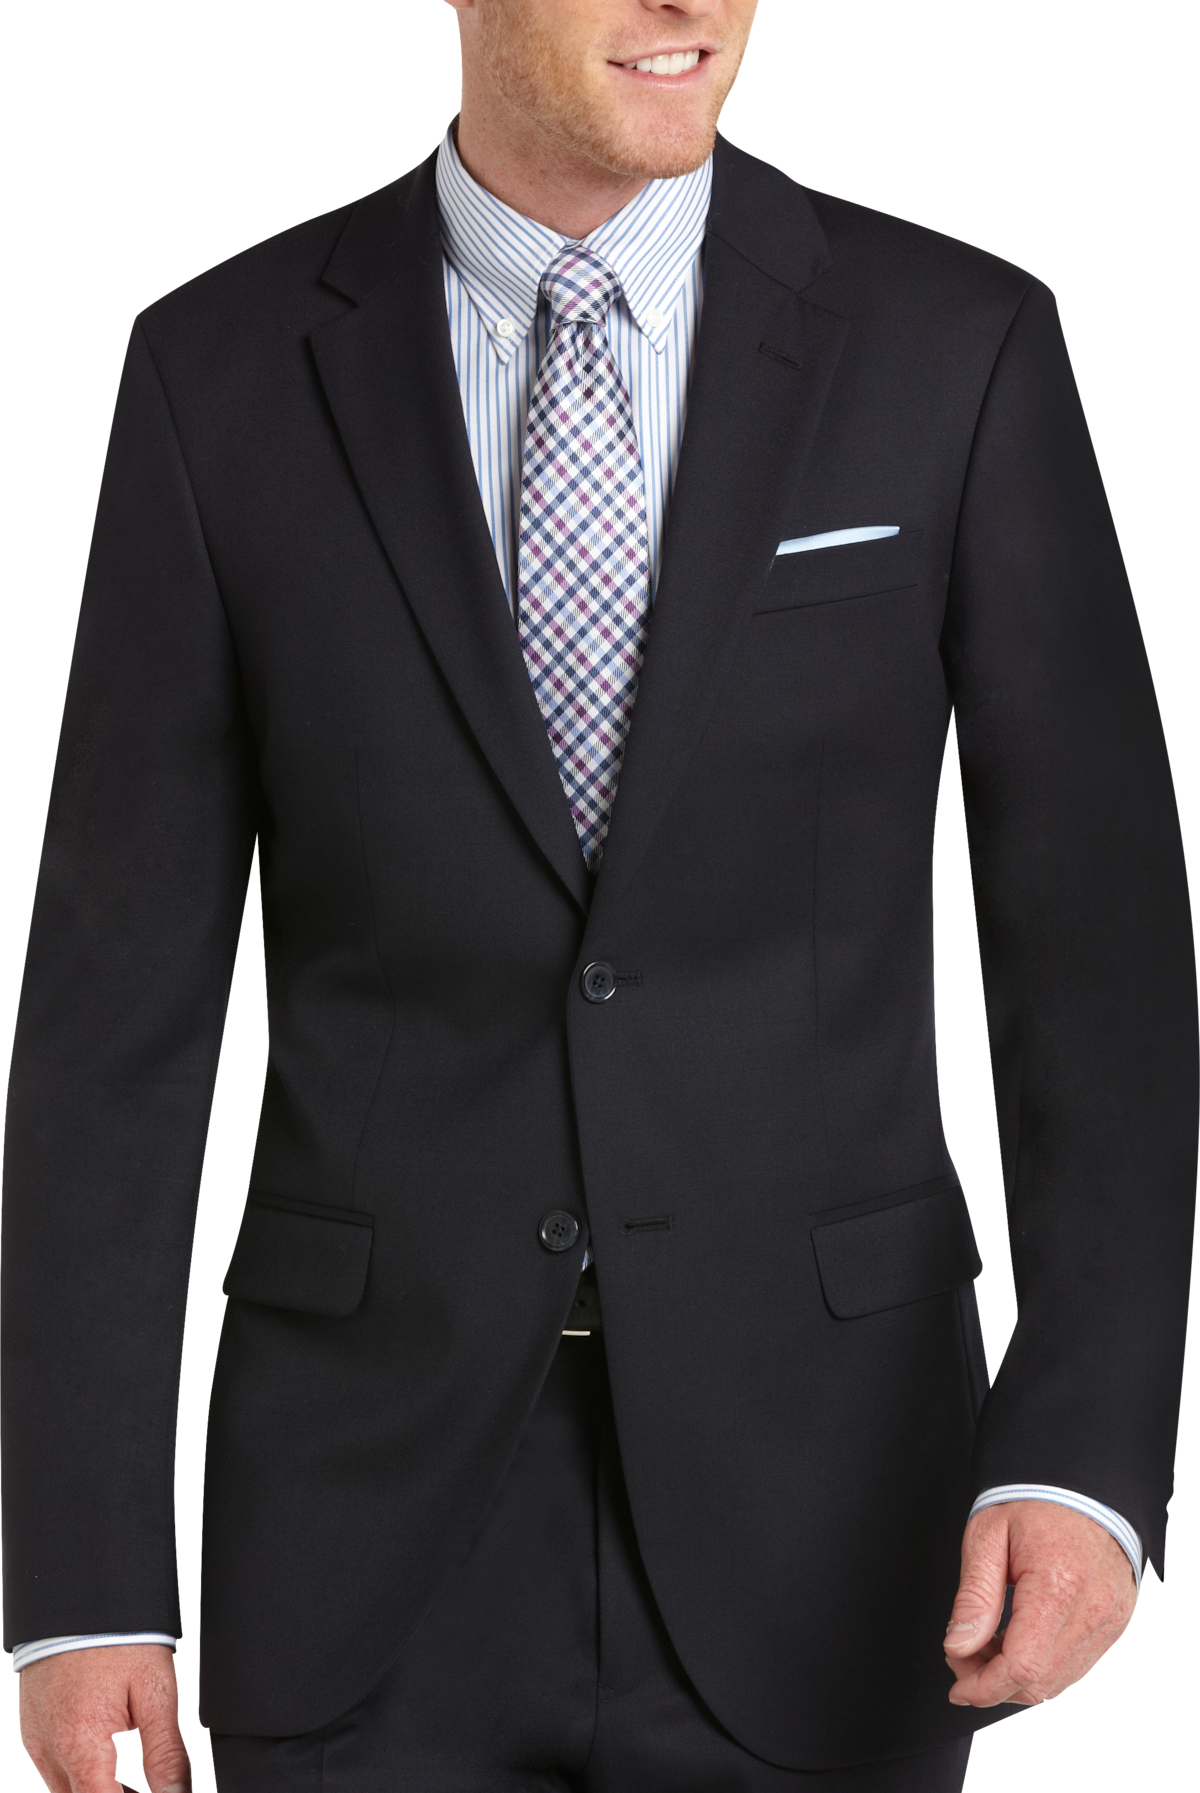 Slim Fit Suits Skinny Suits For Men Men S Wearhouse